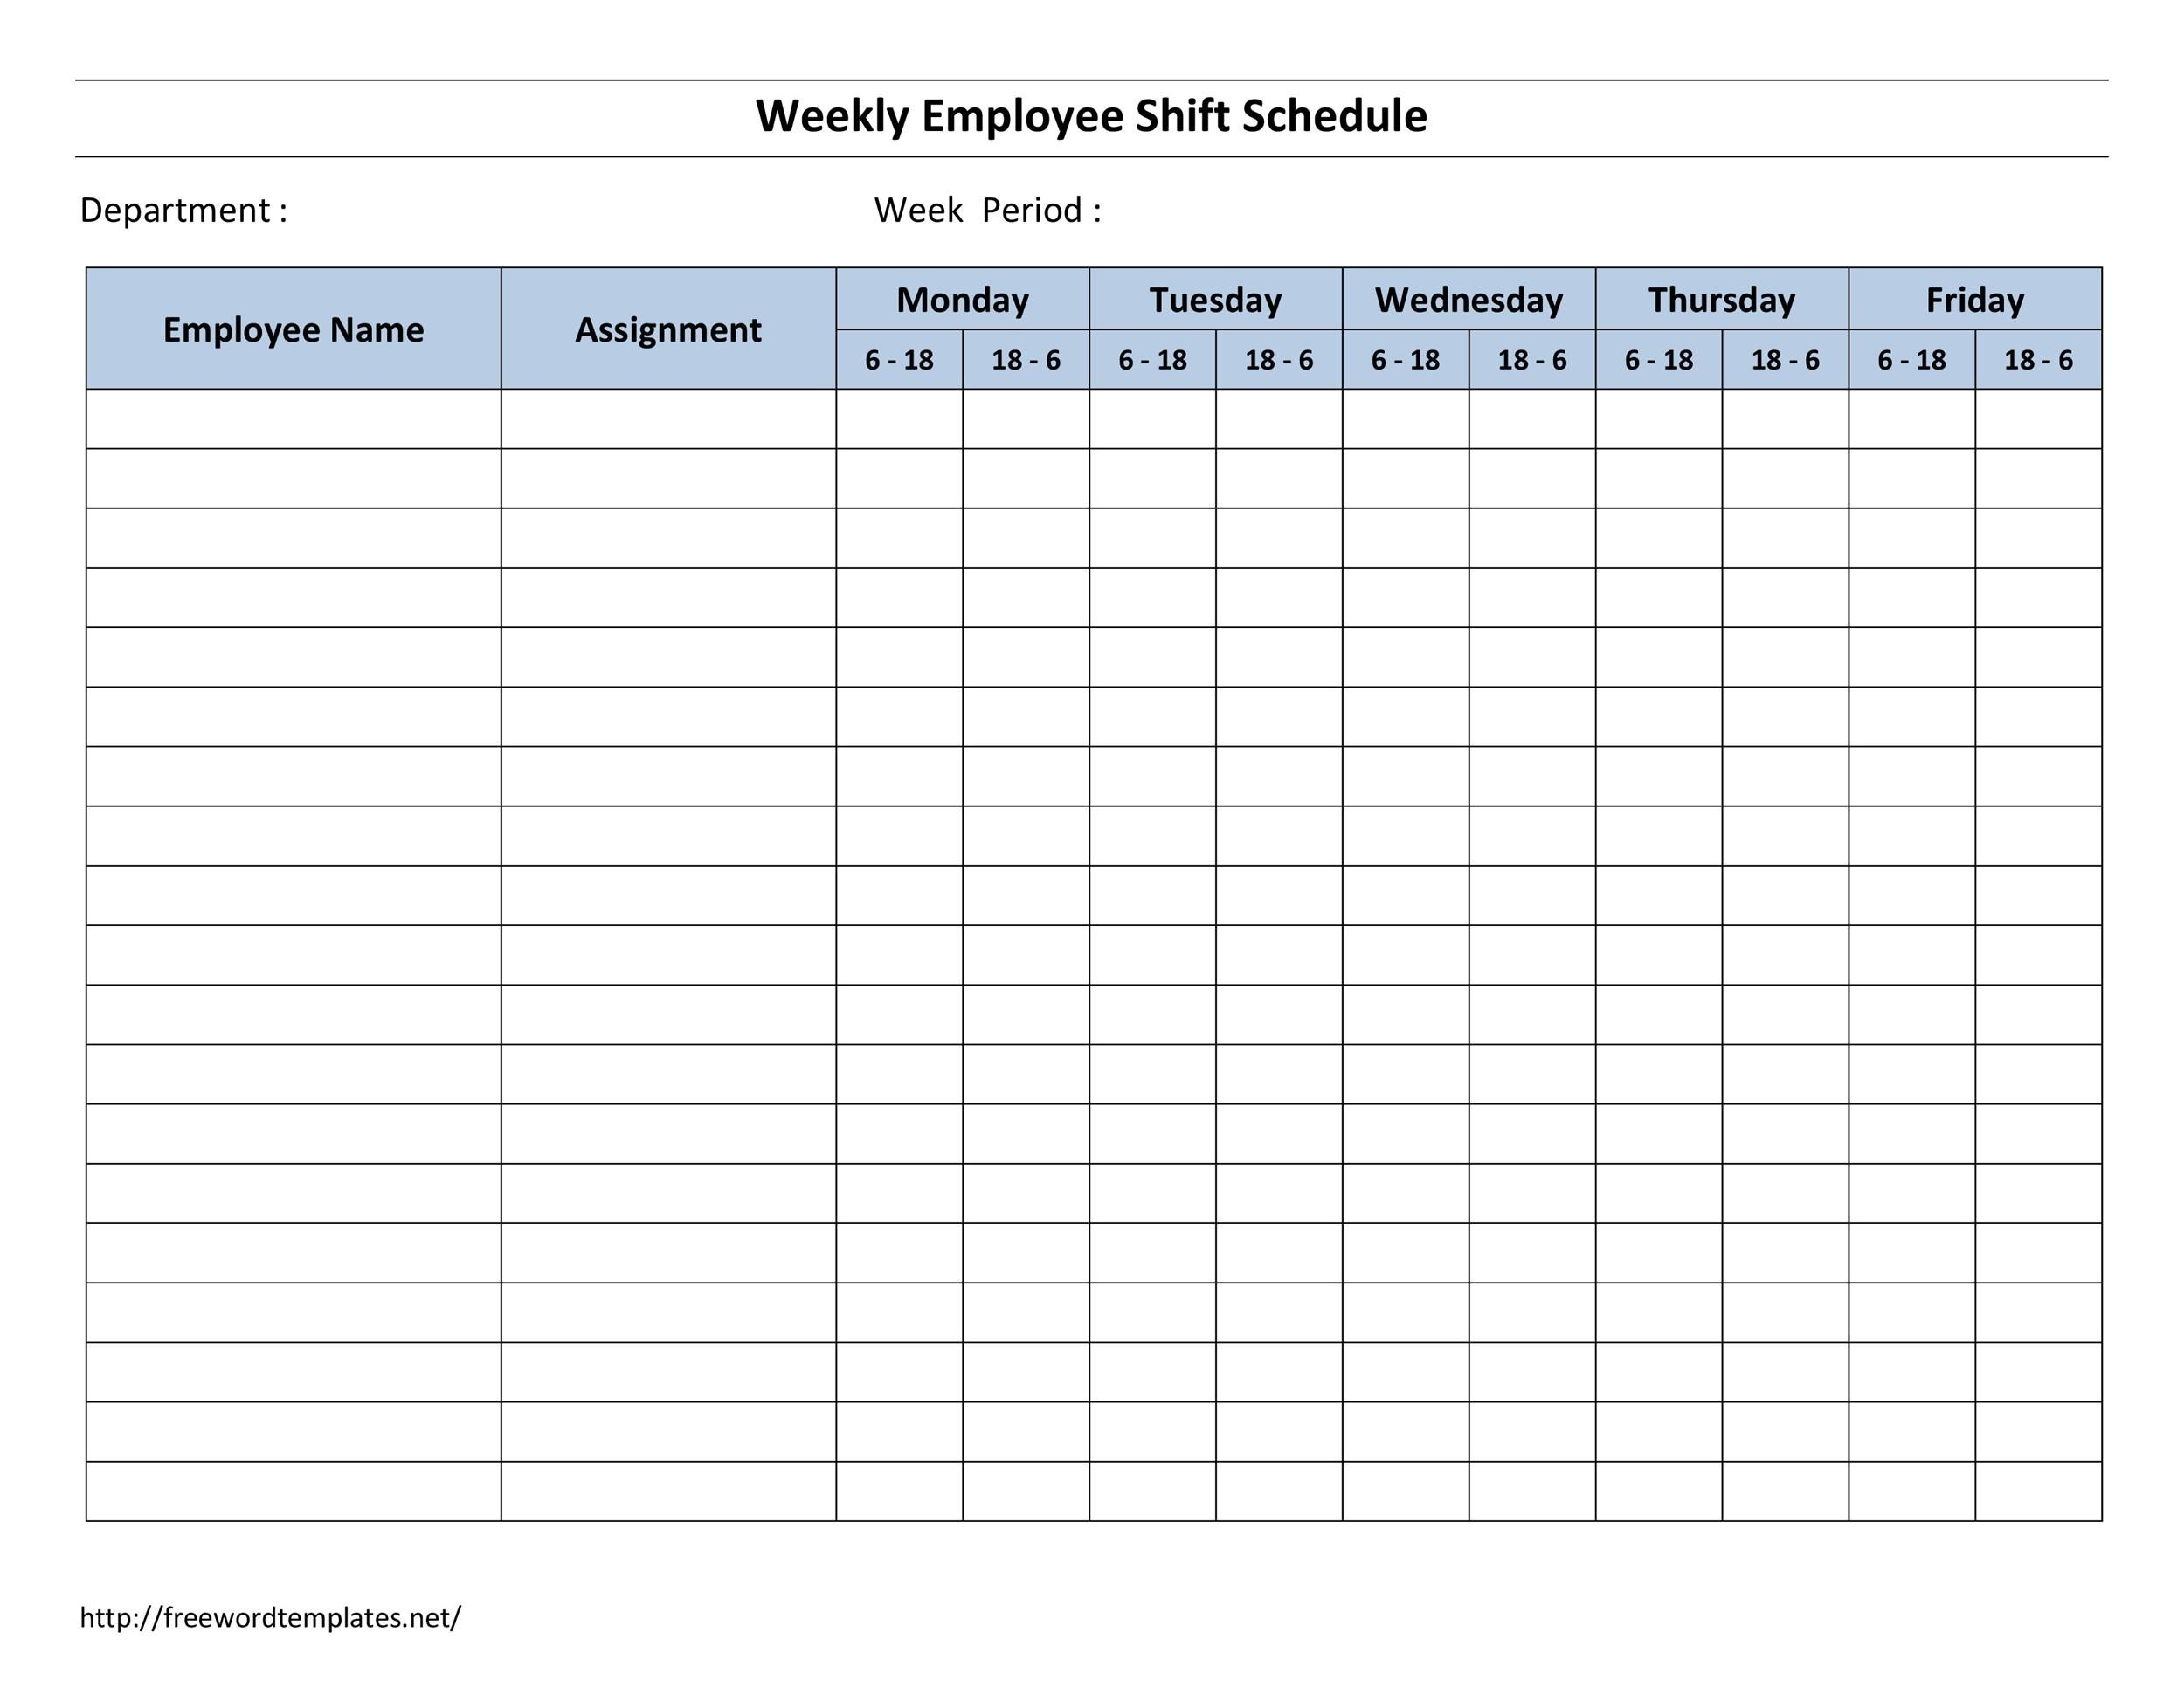 14 Dupont Shift Schedule Templats for any Company Free - Template Lab - shift workers schedule